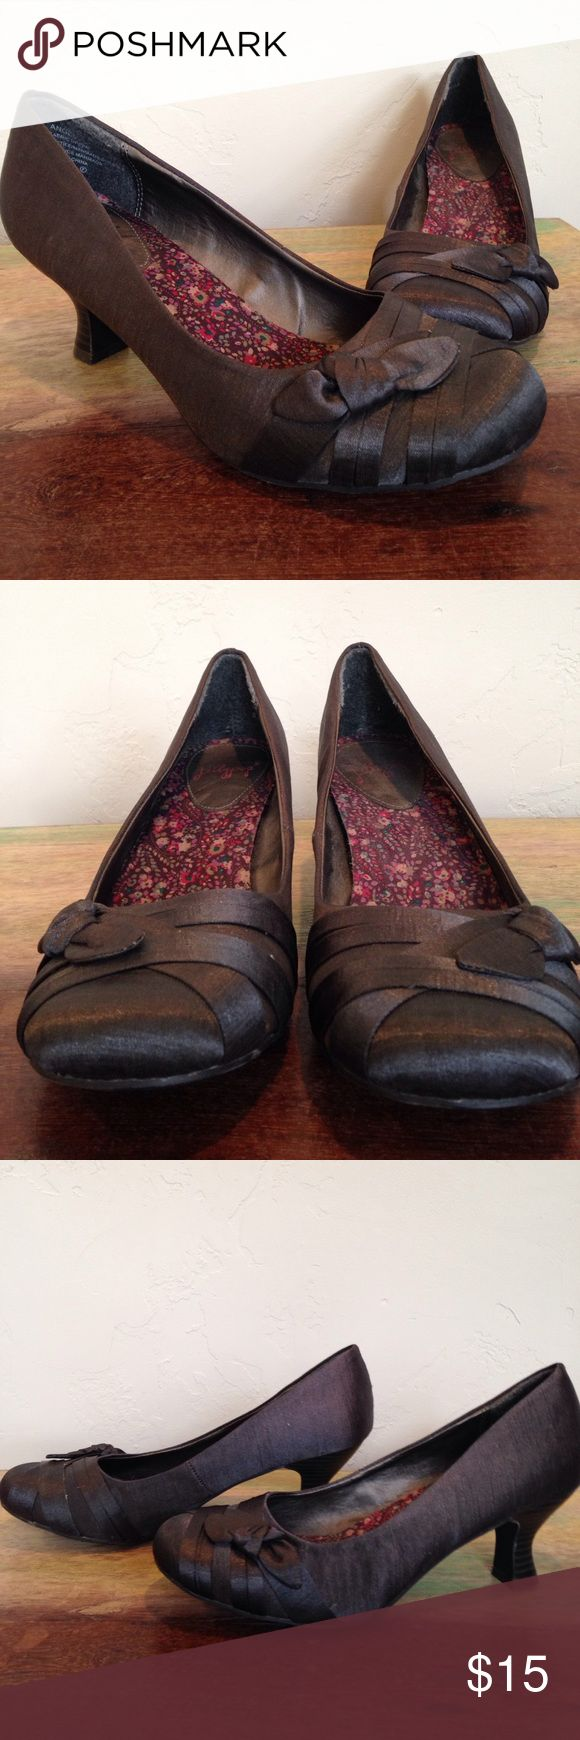 Grey Jellypop shoes with Heel 8.5 Linen material charcoal grey shinny material good condition some small marks on heel otherwise good Shoes